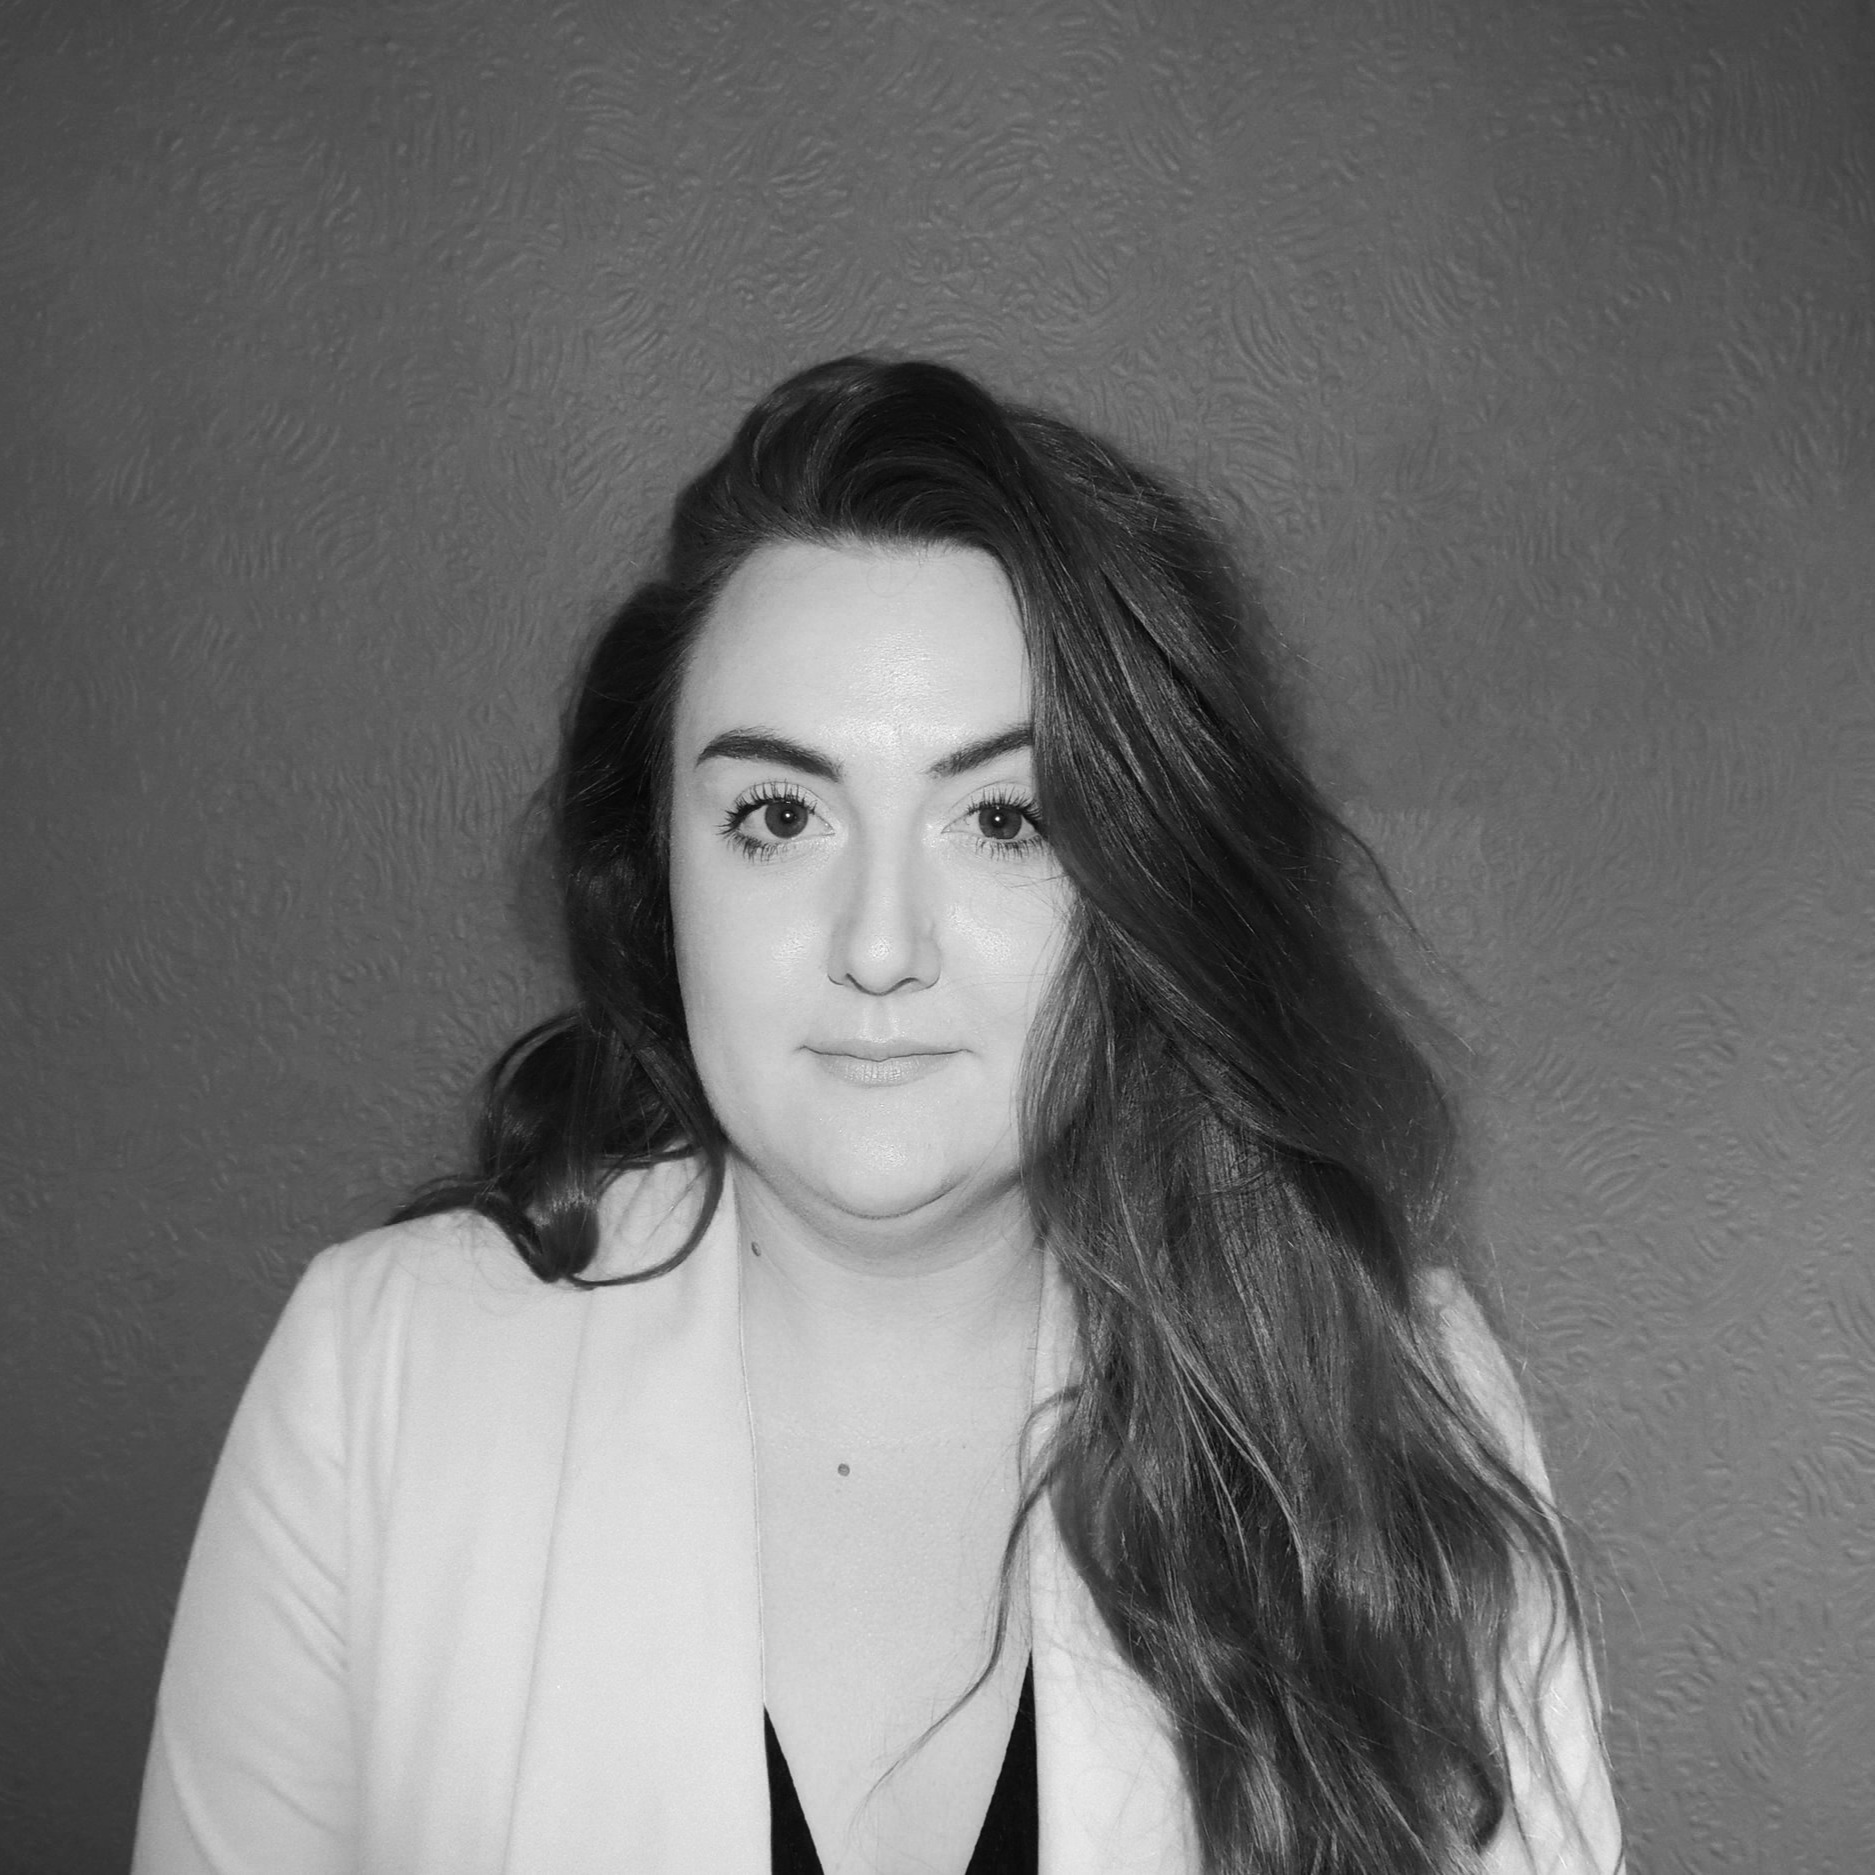 Melissa Lomas   Melissa has been with Coulby conduct since 2017 and has gained vast experience during that time, Melissa enjoys keeping both landlord's and tenant's satisfied and strives to give 100% commitment in all aspects of her day to day dealings within the industry.